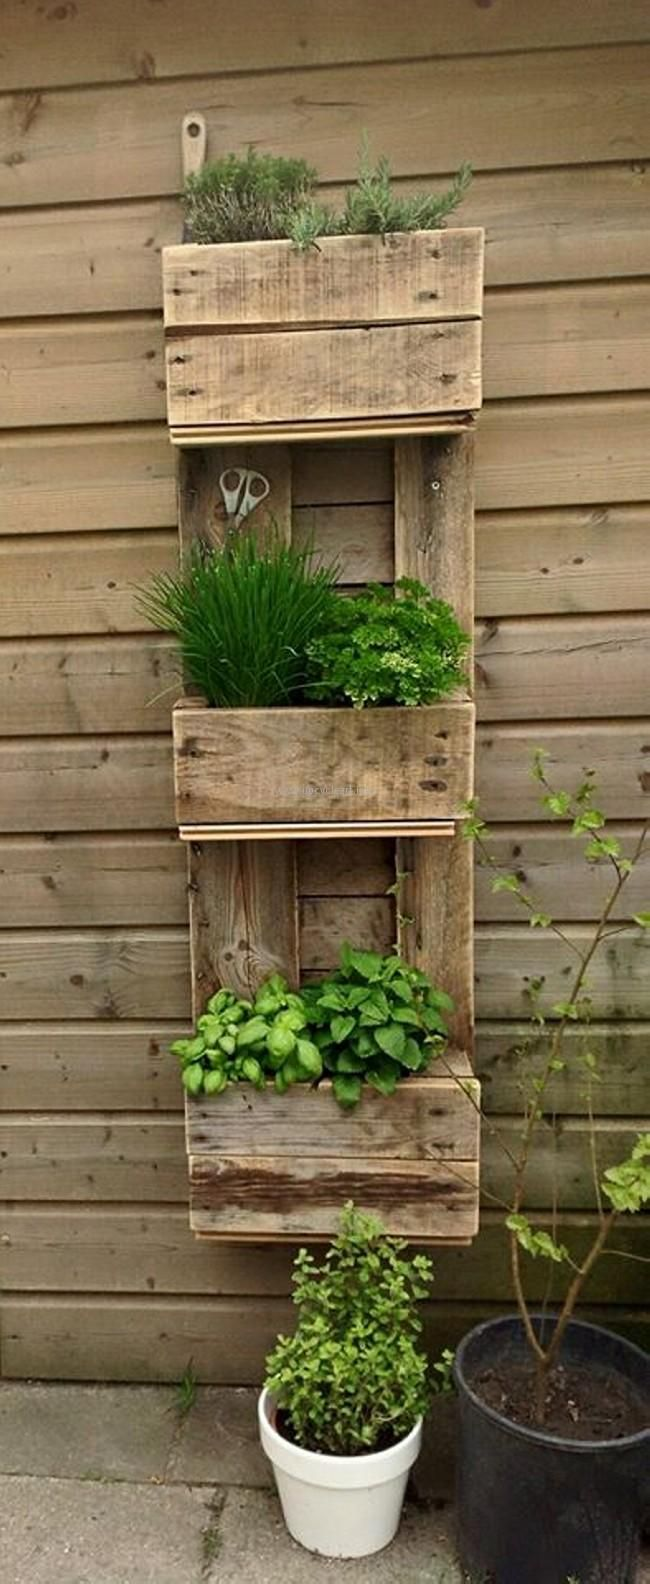 Home decor ideas with wood pallet projects to try pinterest